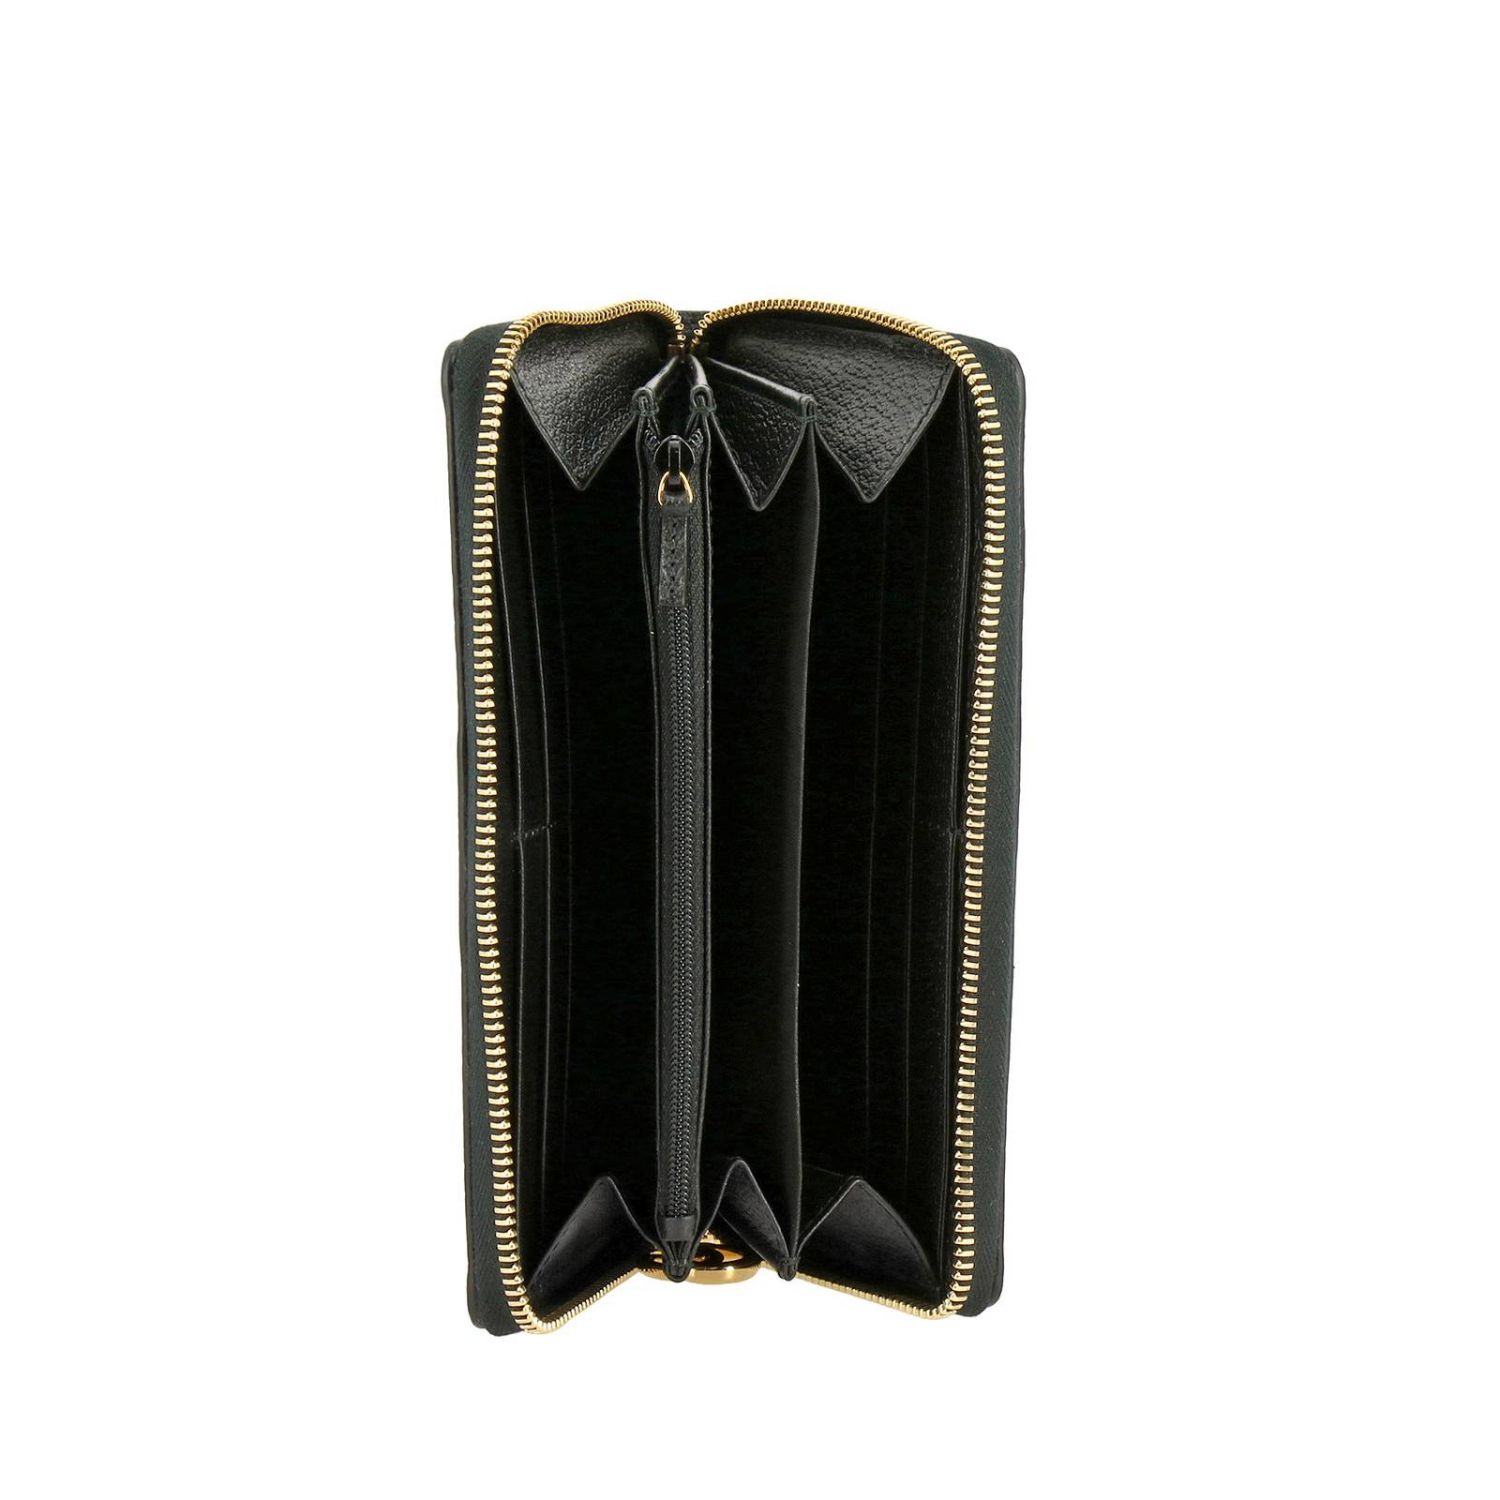 Wallet Gucci: Ophidia Gucci textured leather wallet with Web band and GG monogram black 2